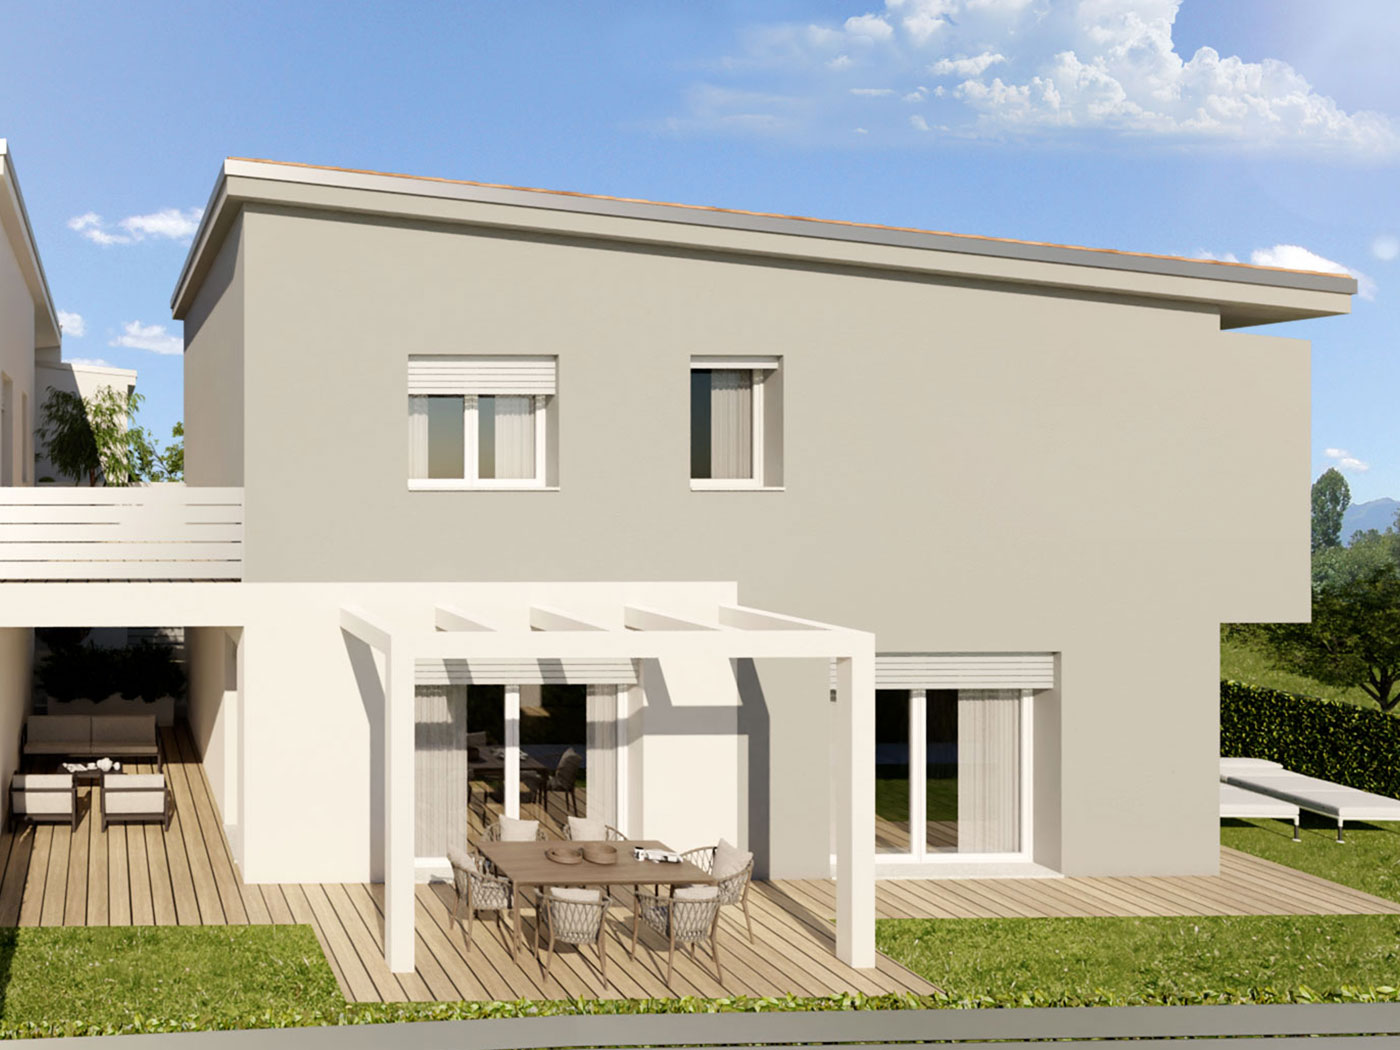 Cantiere Alpacom - Vicenza